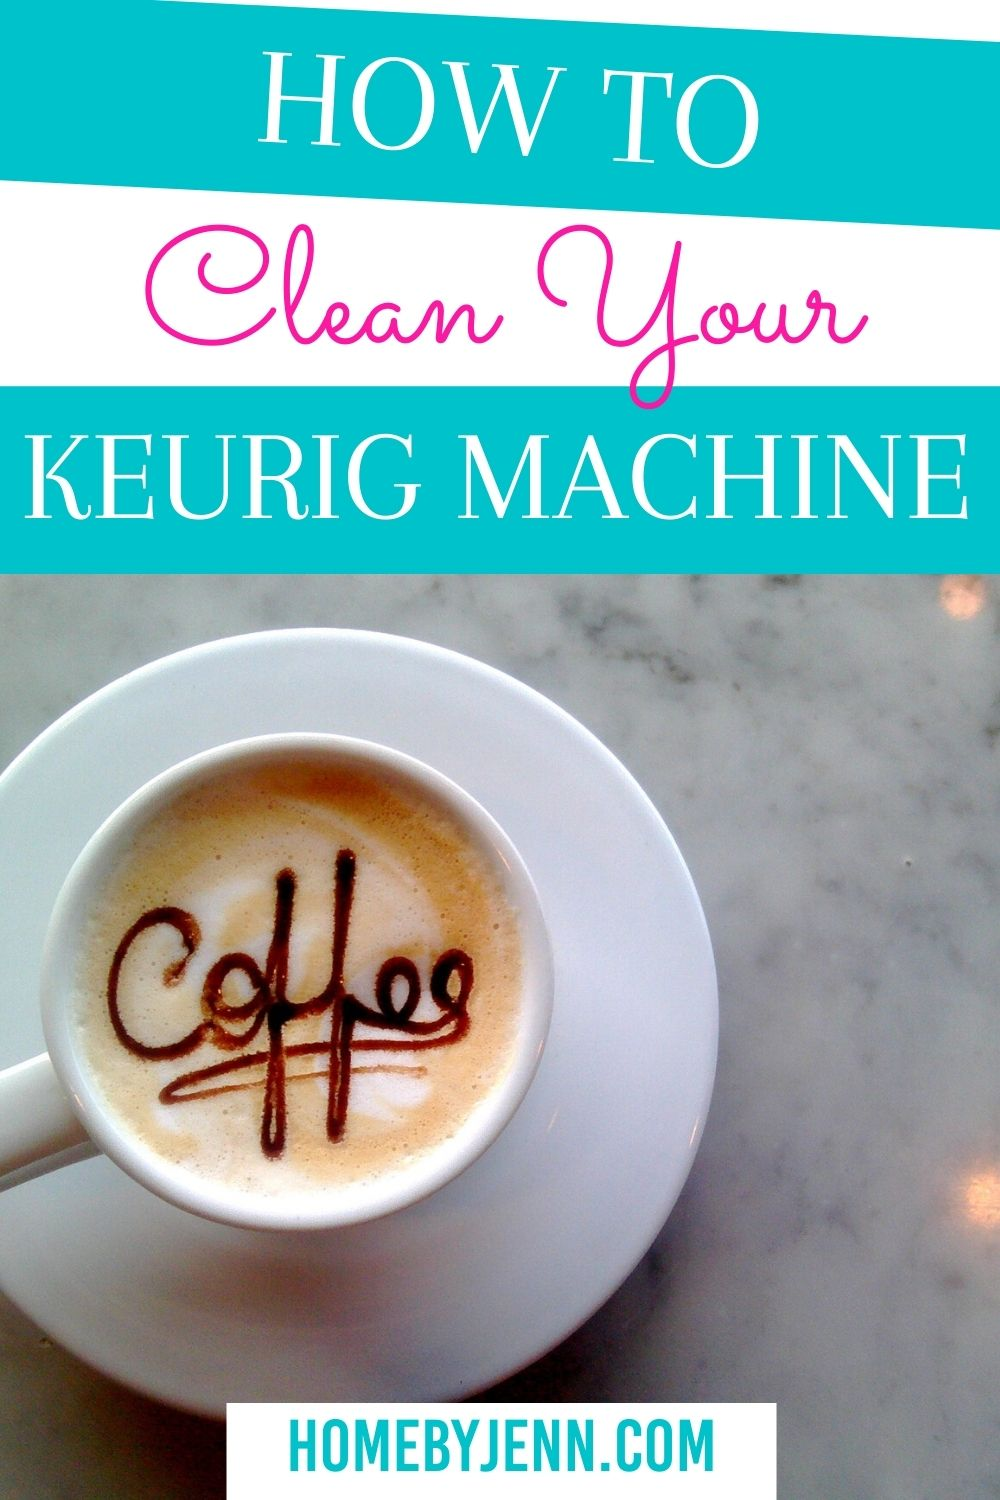 Keep your coffee tasting fresh by cleaning your keurig. Learn how to clean your keurig machine with these simple cleaning tips #keurig #cleankeurig #coffeemachine via @homebyjenn